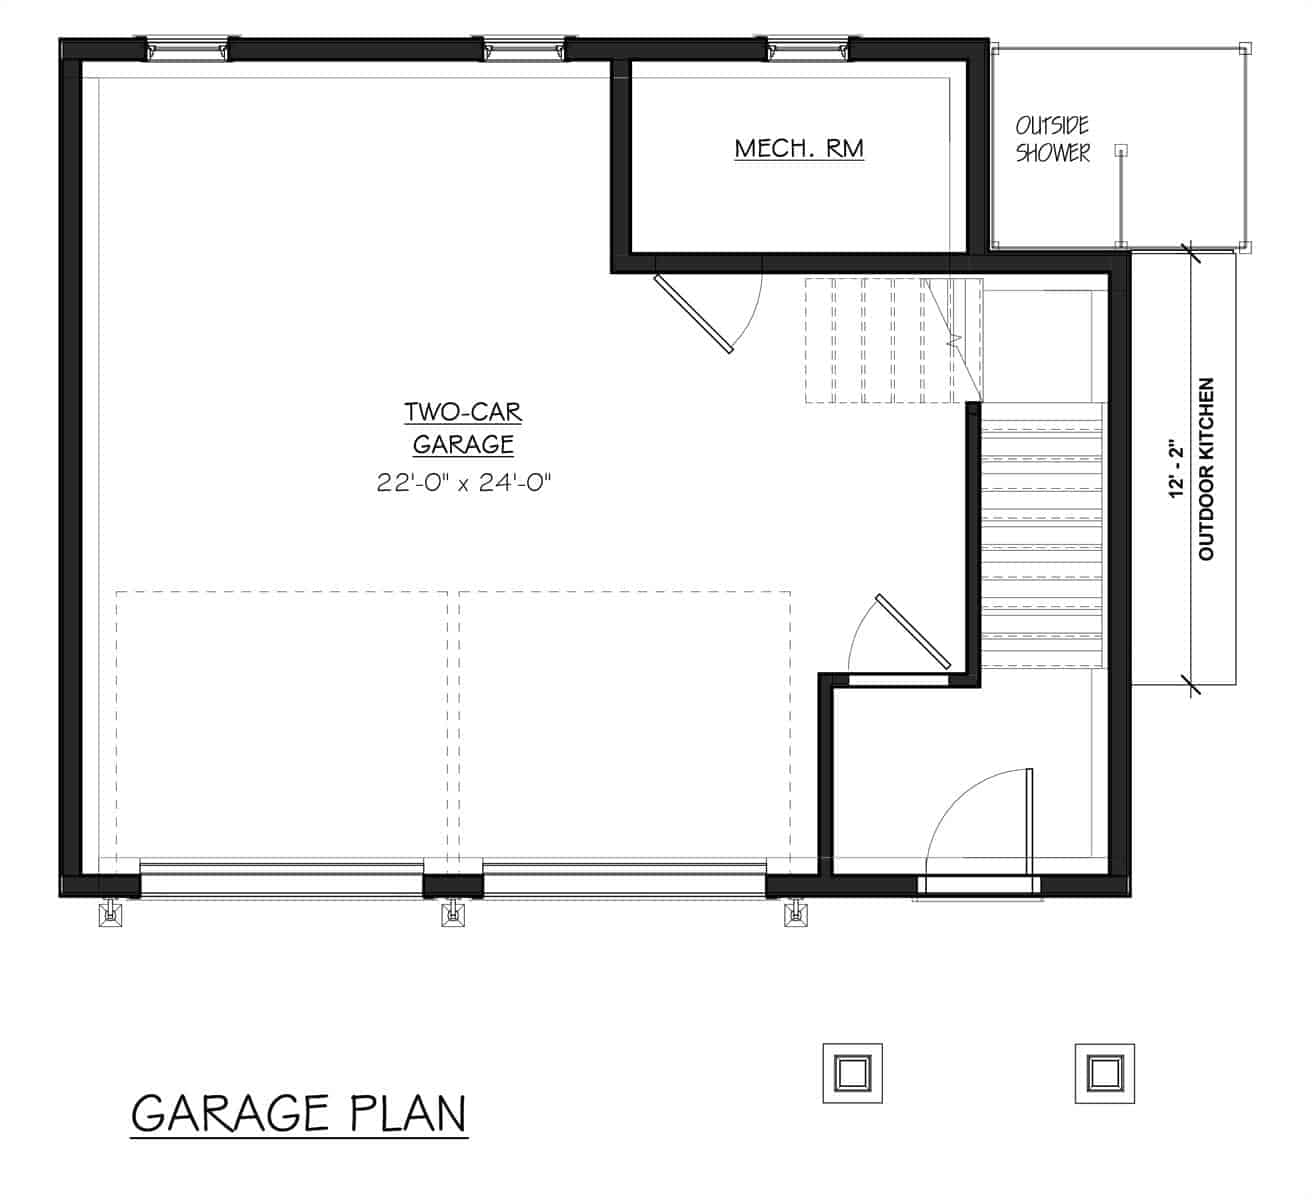 Garage floor plan with a mechanical room, outdoor shower, and outdoor kitchen.